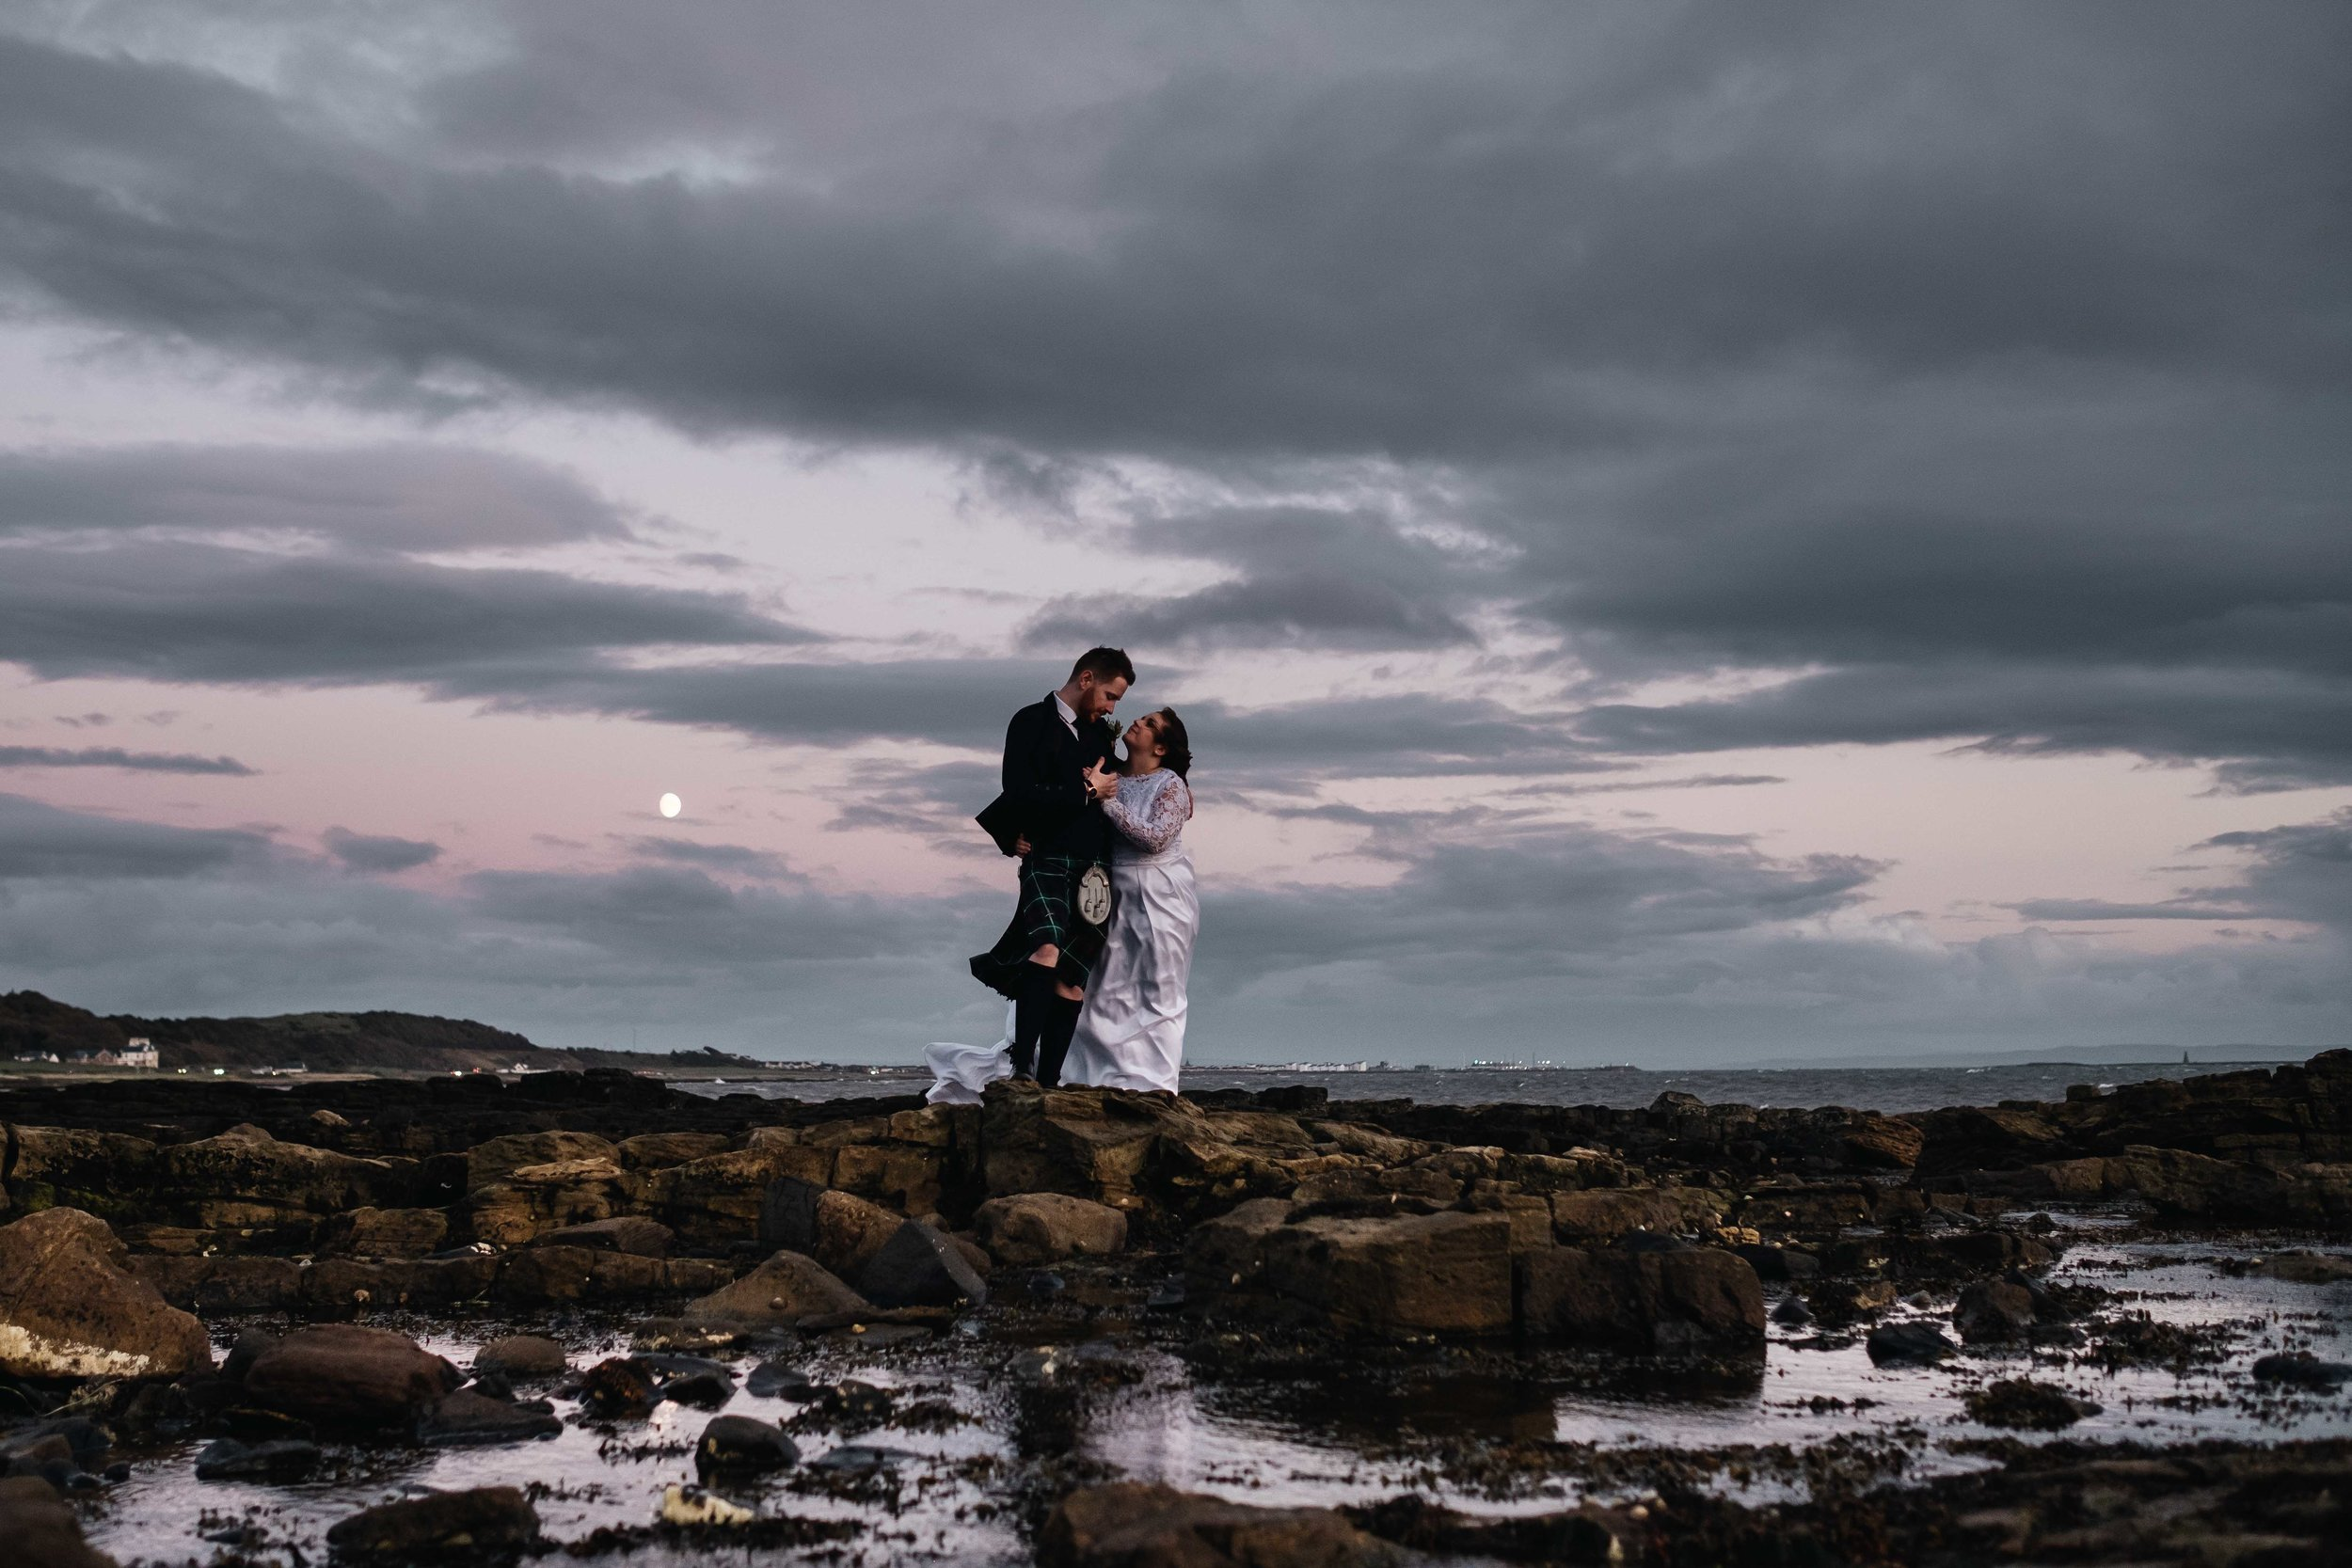 A bride and groom stand on a rock at night embracing at the beach and the moon is high in the sky